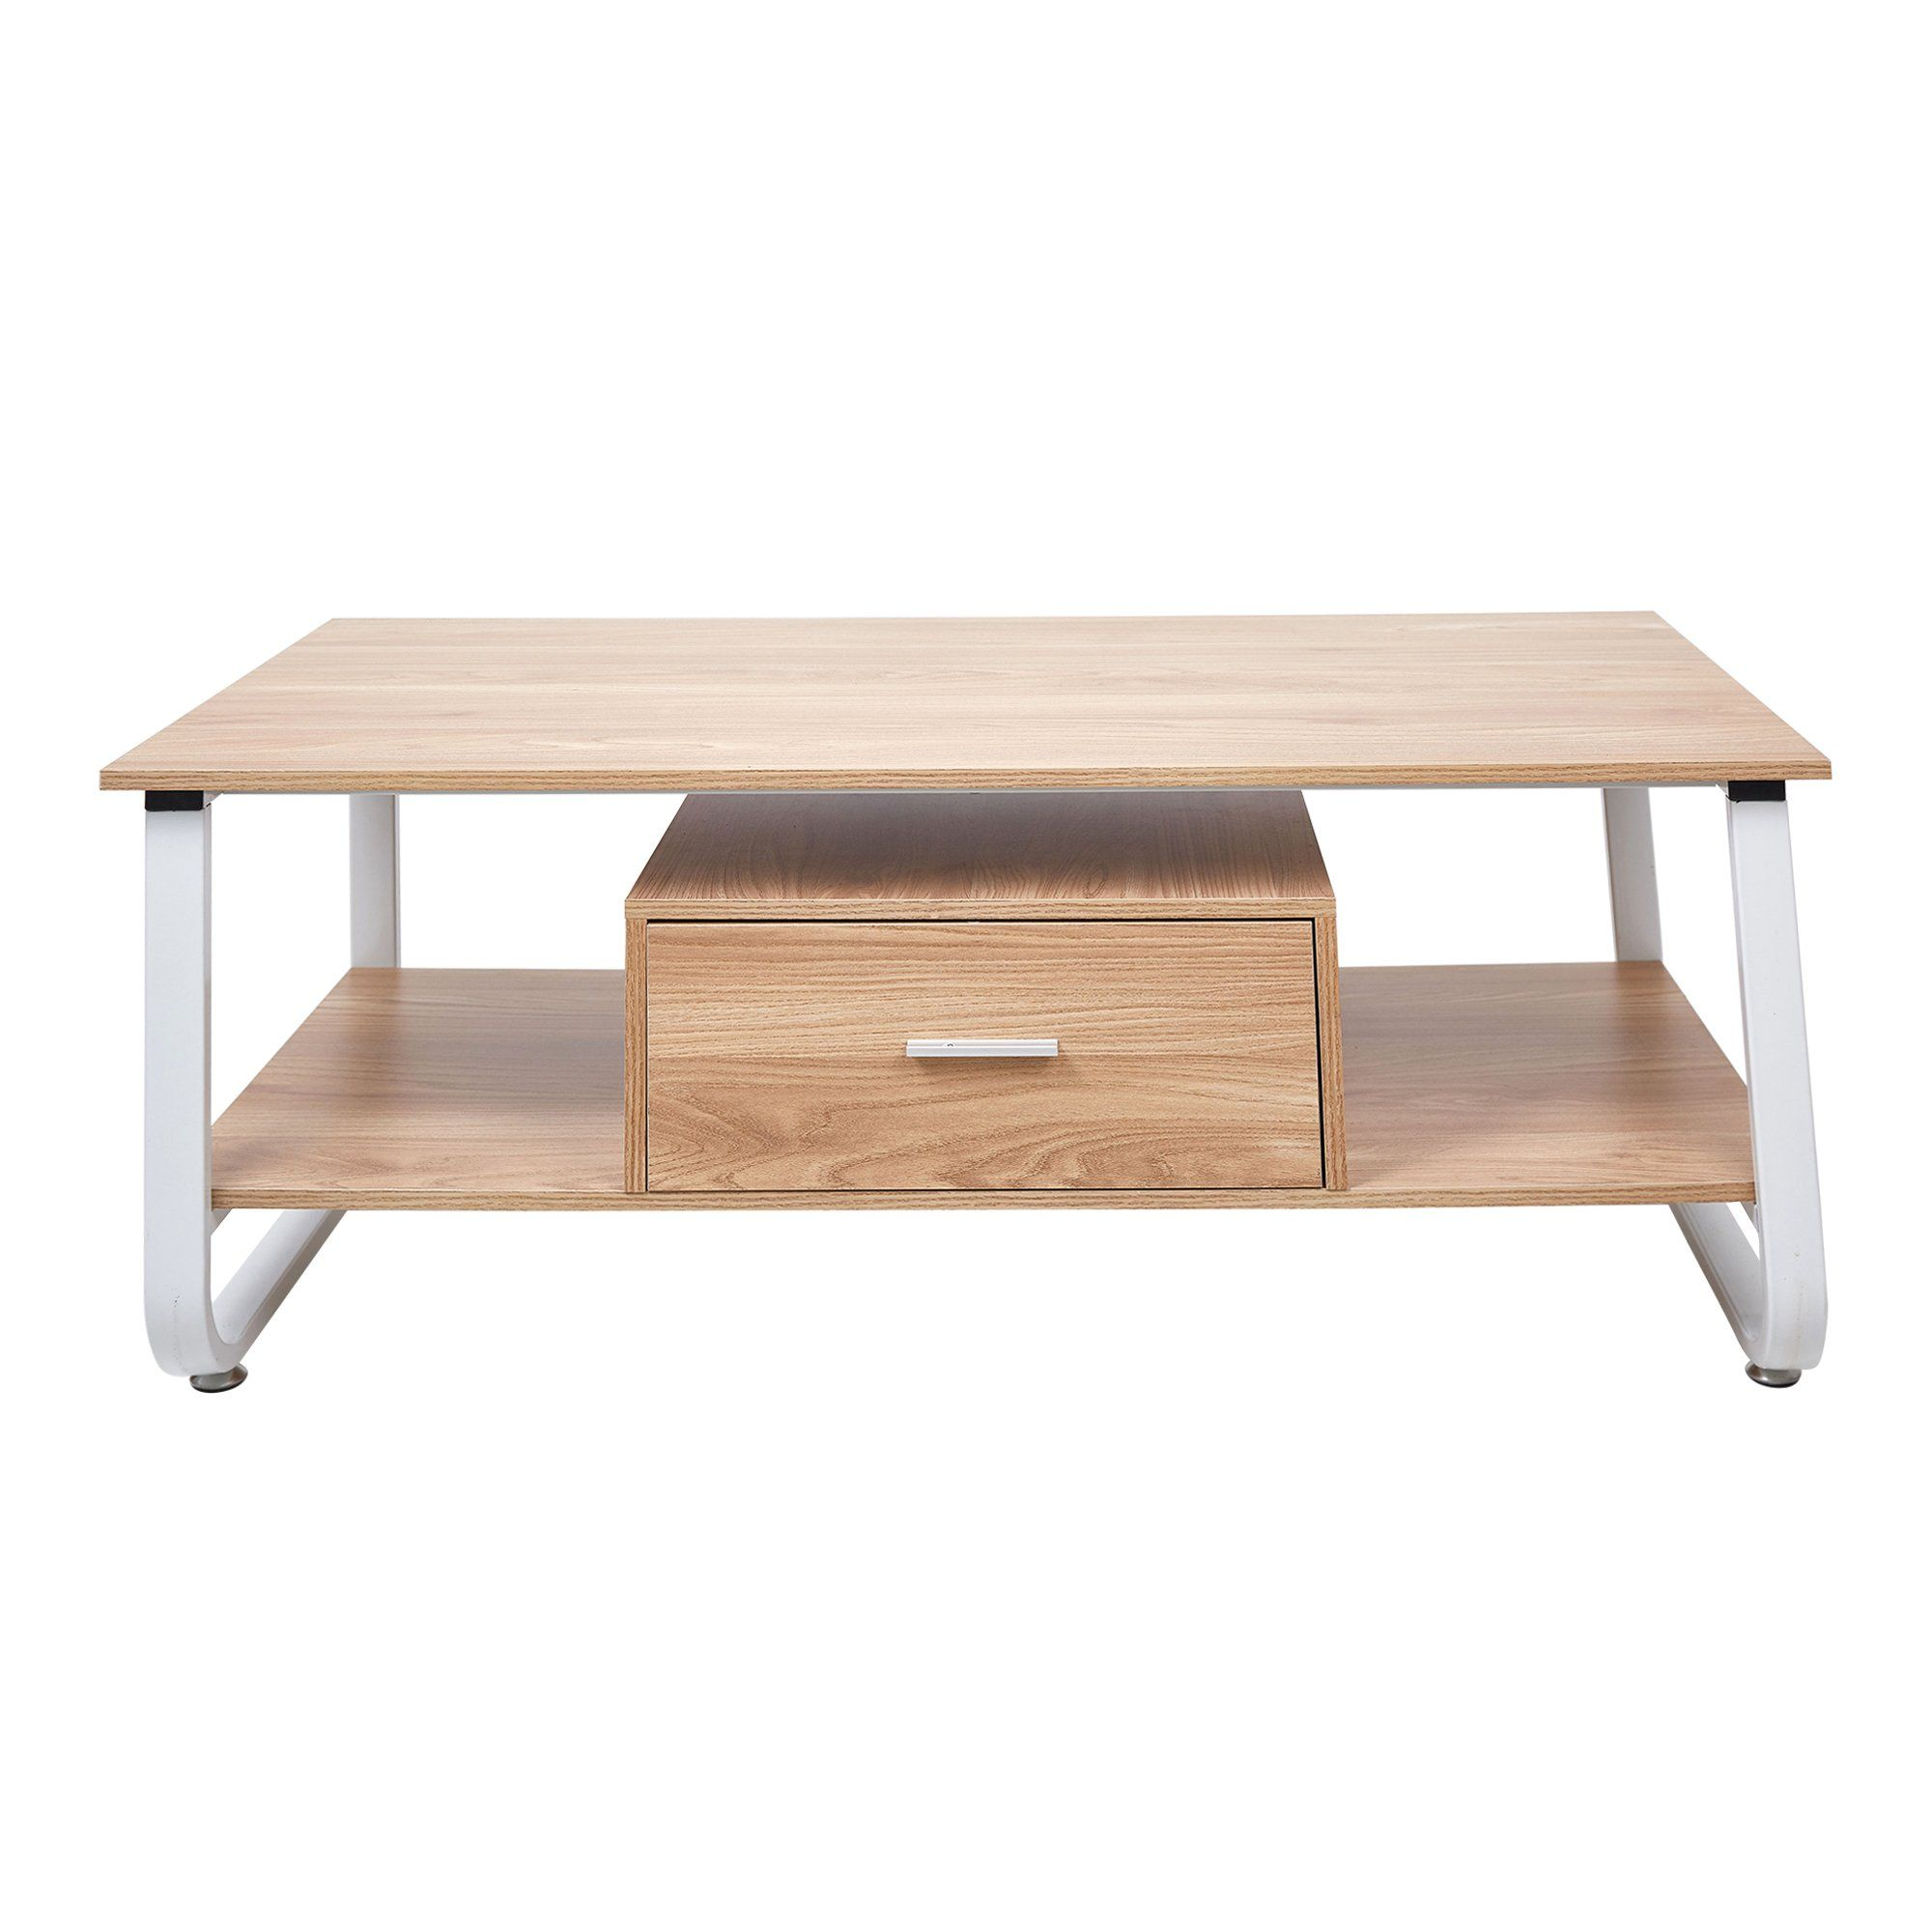 Lucky Tree 47a Long Coffee Table With Storage Drawer 2tier Modern Coffee Desk For Living Room Oak Y Coffee Table Solid Wood Coffee Table Long Coffee Tables [ 2000 x 2000 Pixel ]